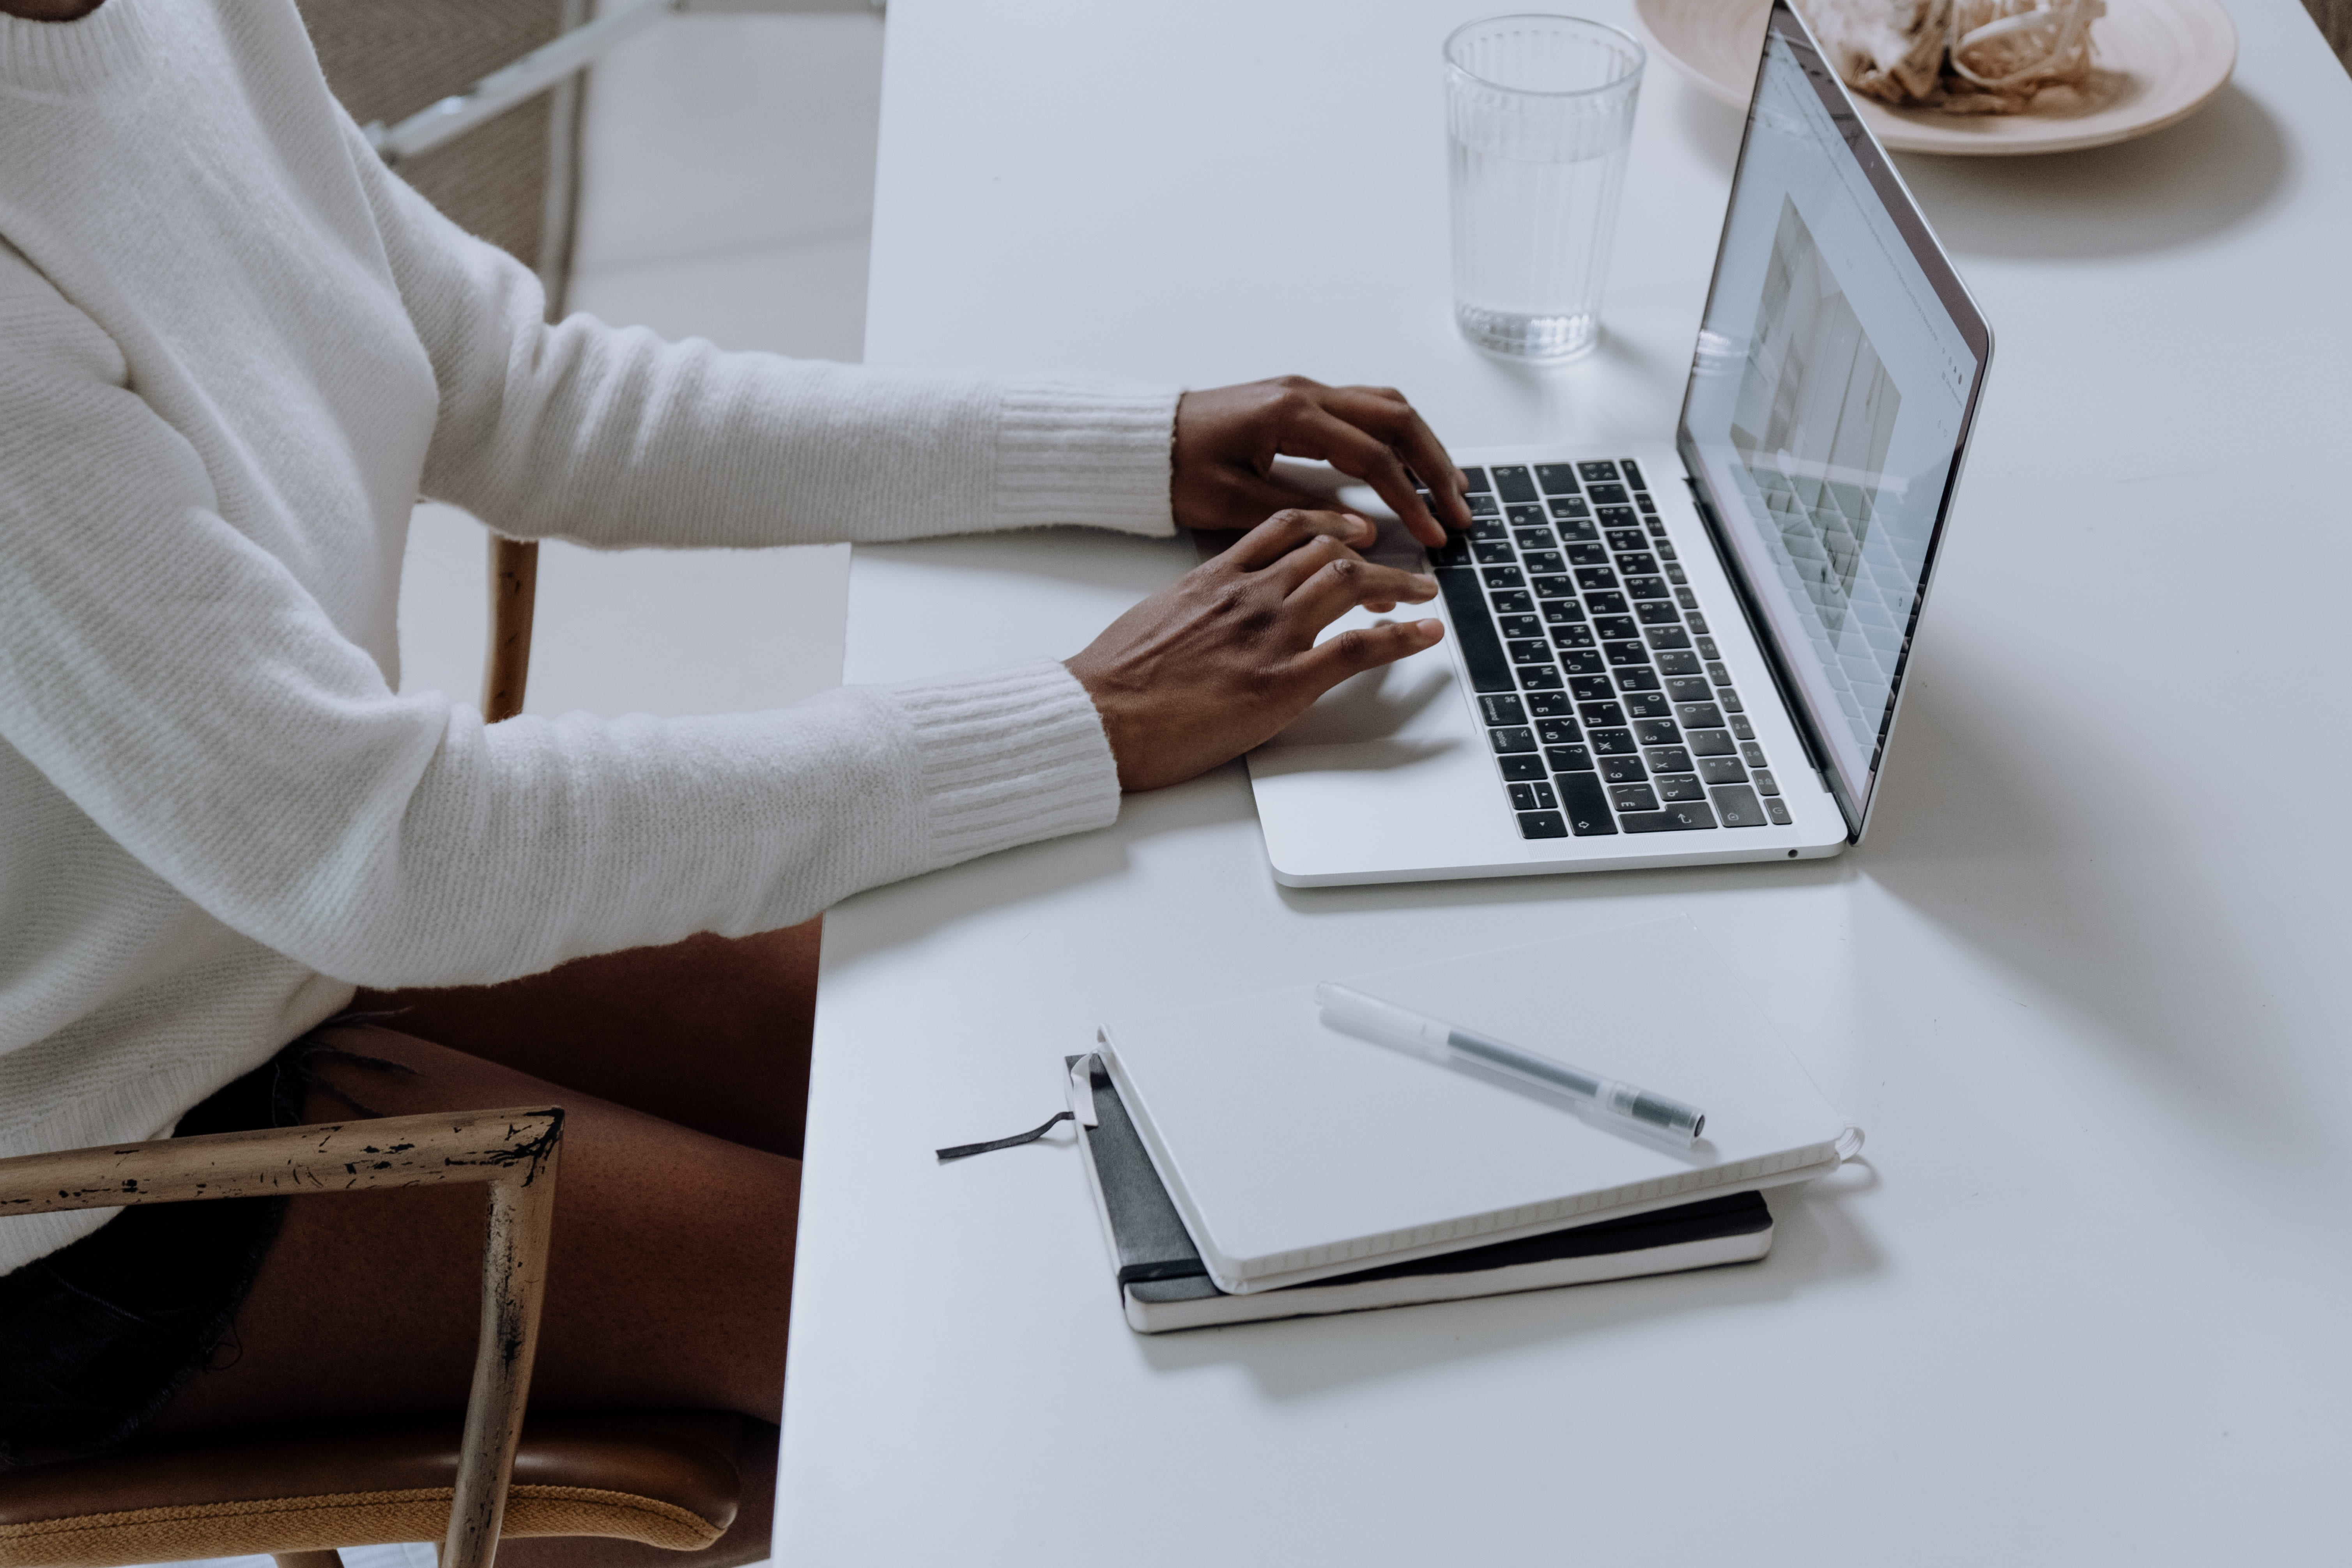 A person typing on a laptop sat at a desk. To their left is a glass of water and to their write are two notebooks and a pen.